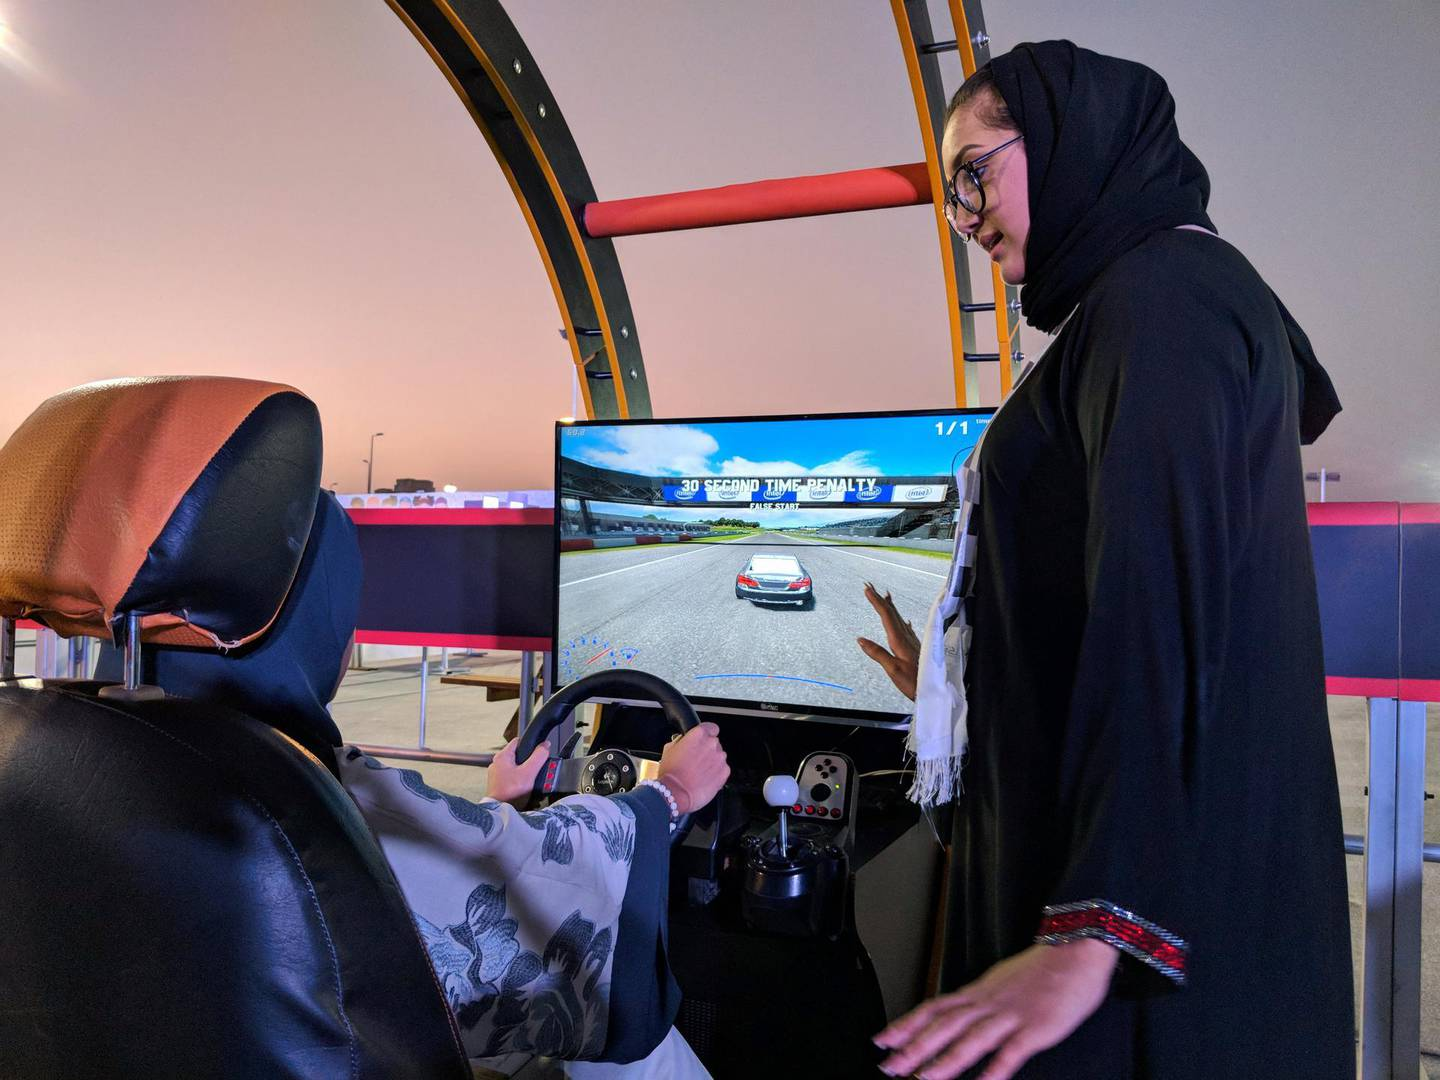 Rohood Bugis, as she takes to the wheel of the virtual training area in the CIc.  Amina Abu Al Ola is the trainer advising her